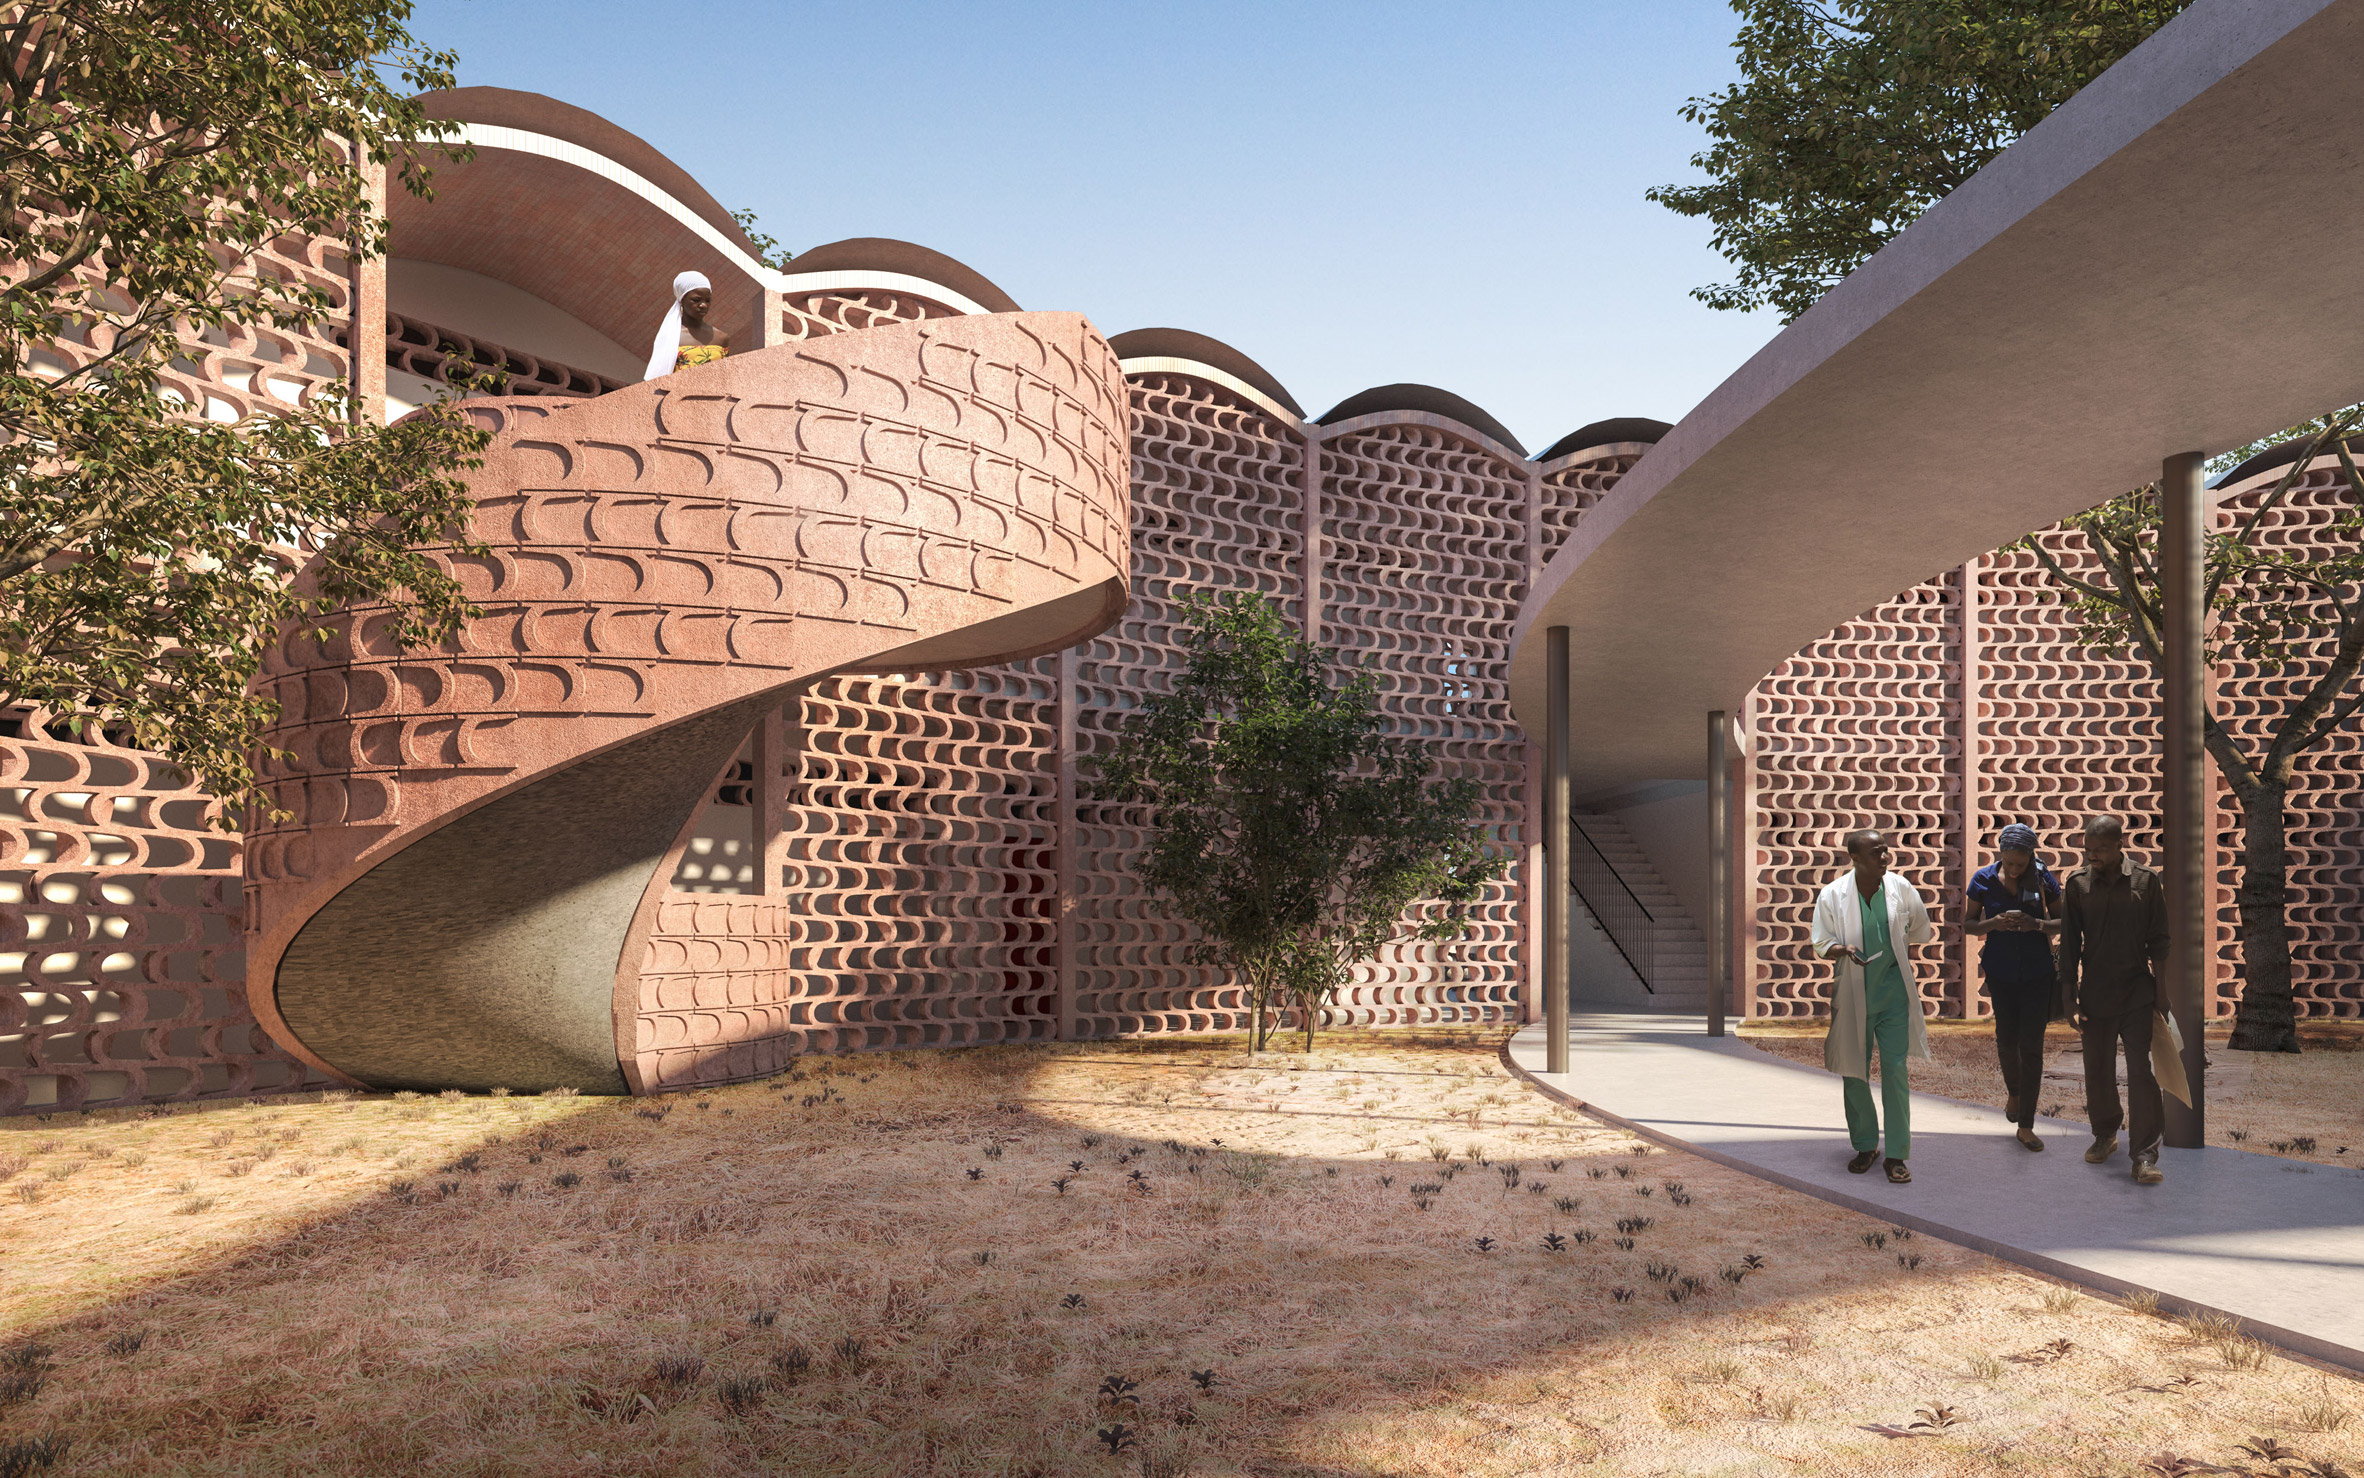 Manuel Herz Architects plans S-shaped extension to Senegalese hospital